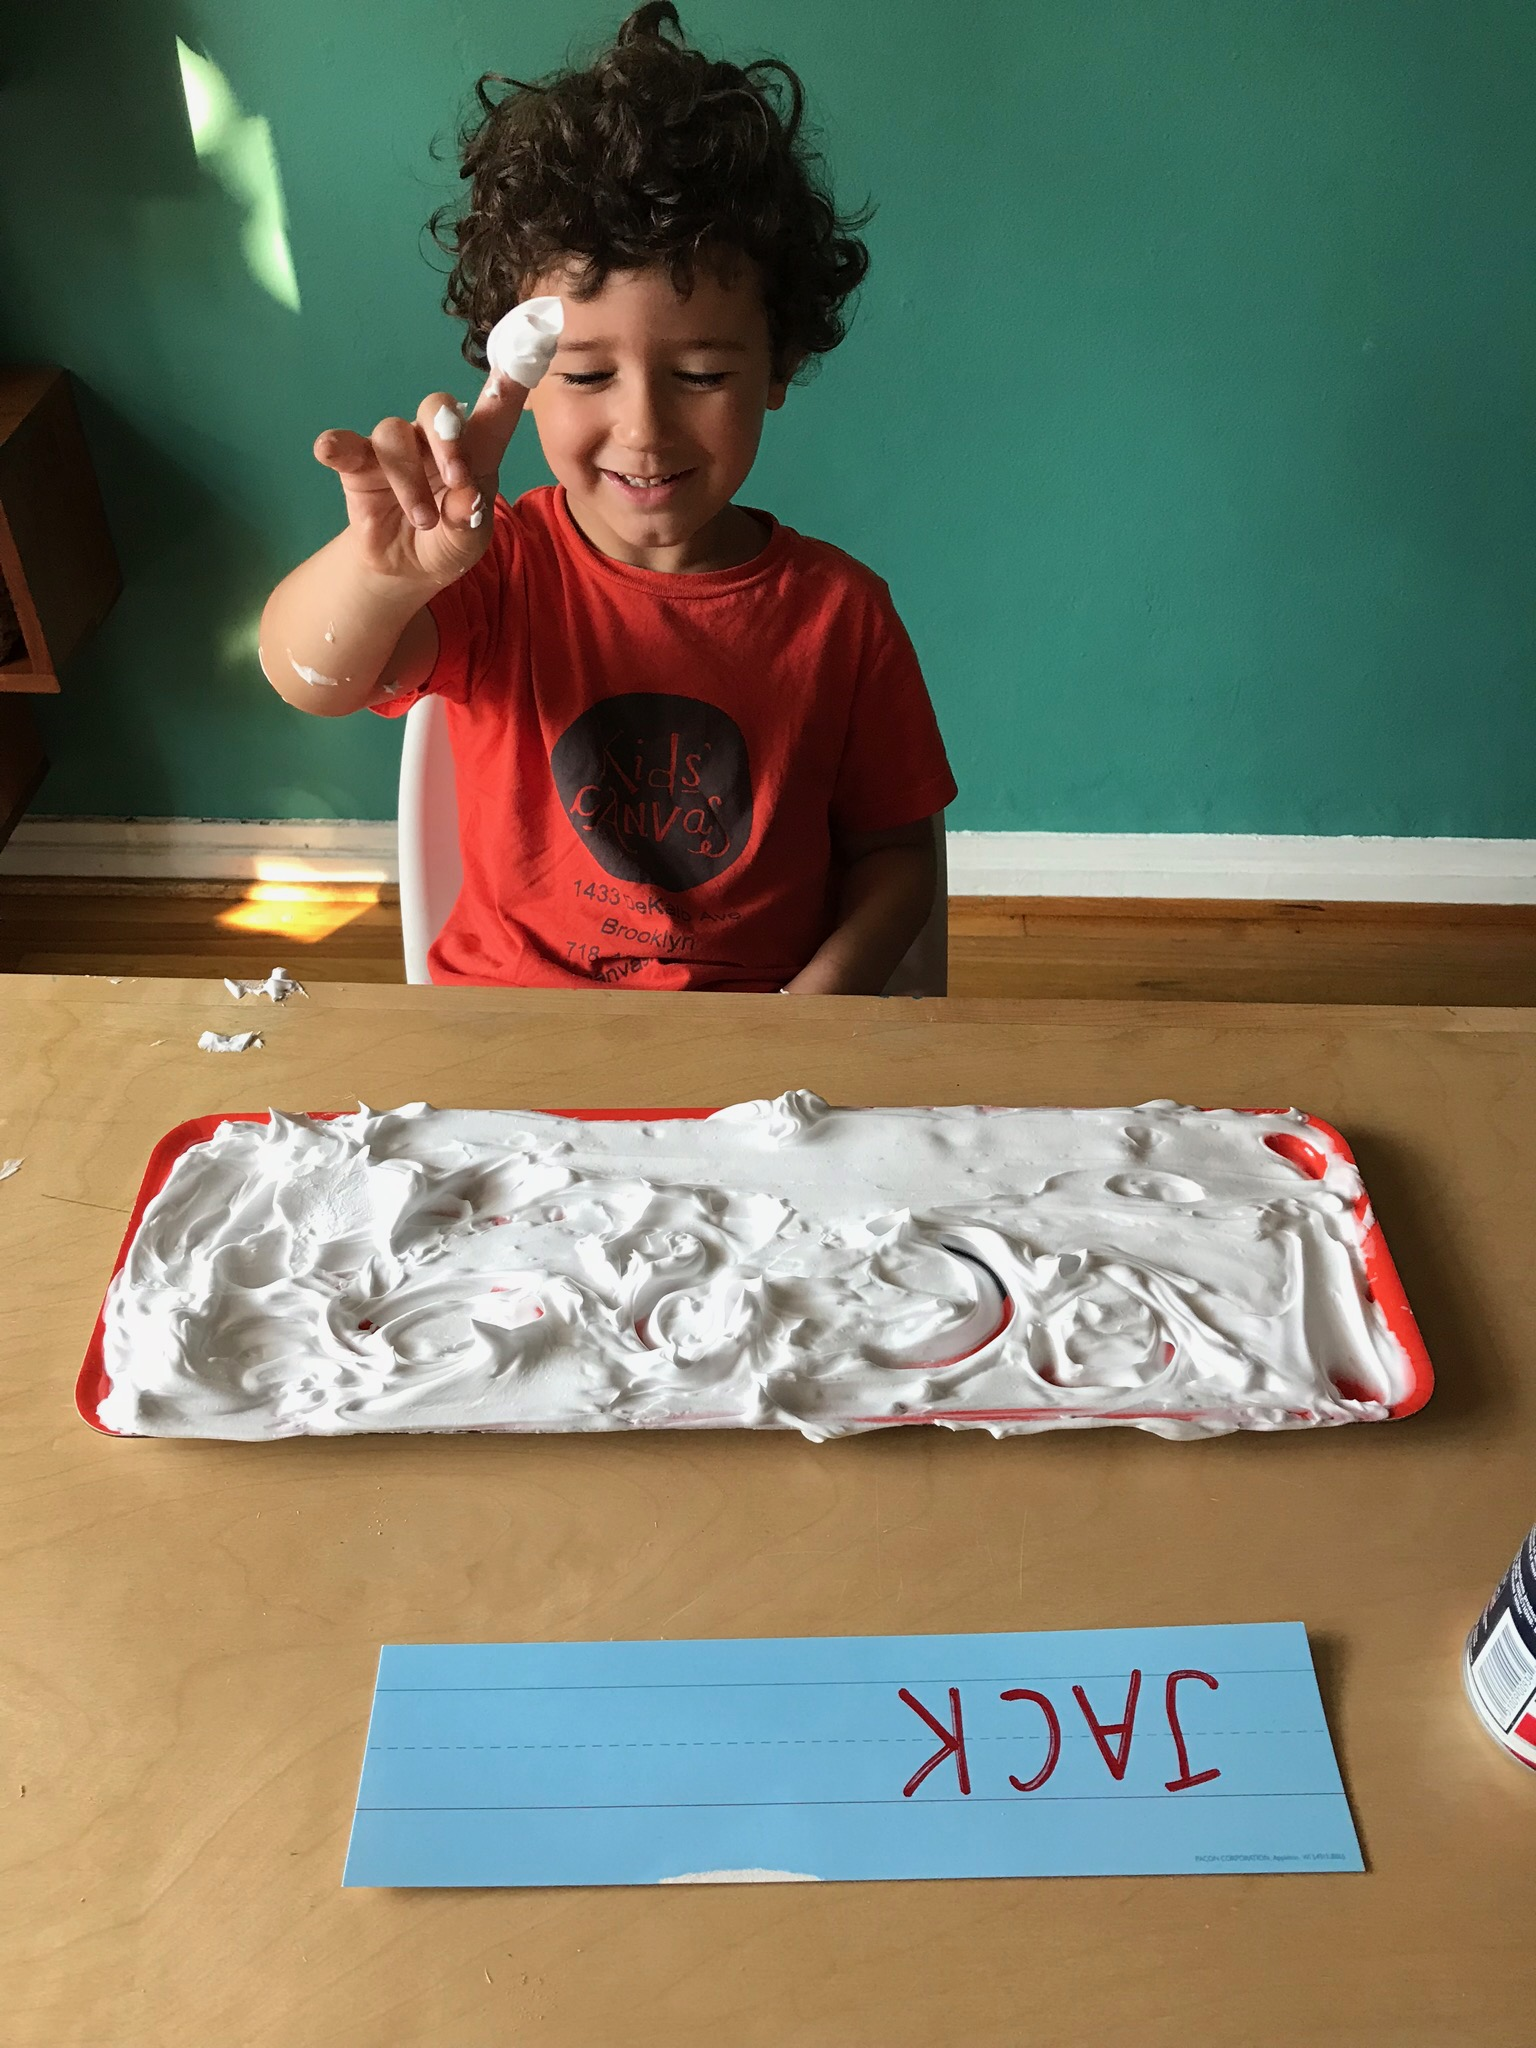 SHAVING CREAM  Materials: Shaving cream, low baking sheet or tray  Process: Allow children to explore the texture and feel of the shaving cream and encourage them to create shapes with their fingers. Older children can practice writing their name, which helps them form letters in later writing.  Words: ABC's, push, squiggle, stretch, shape words  Questions: What can you make? What did you try? I wonder if?